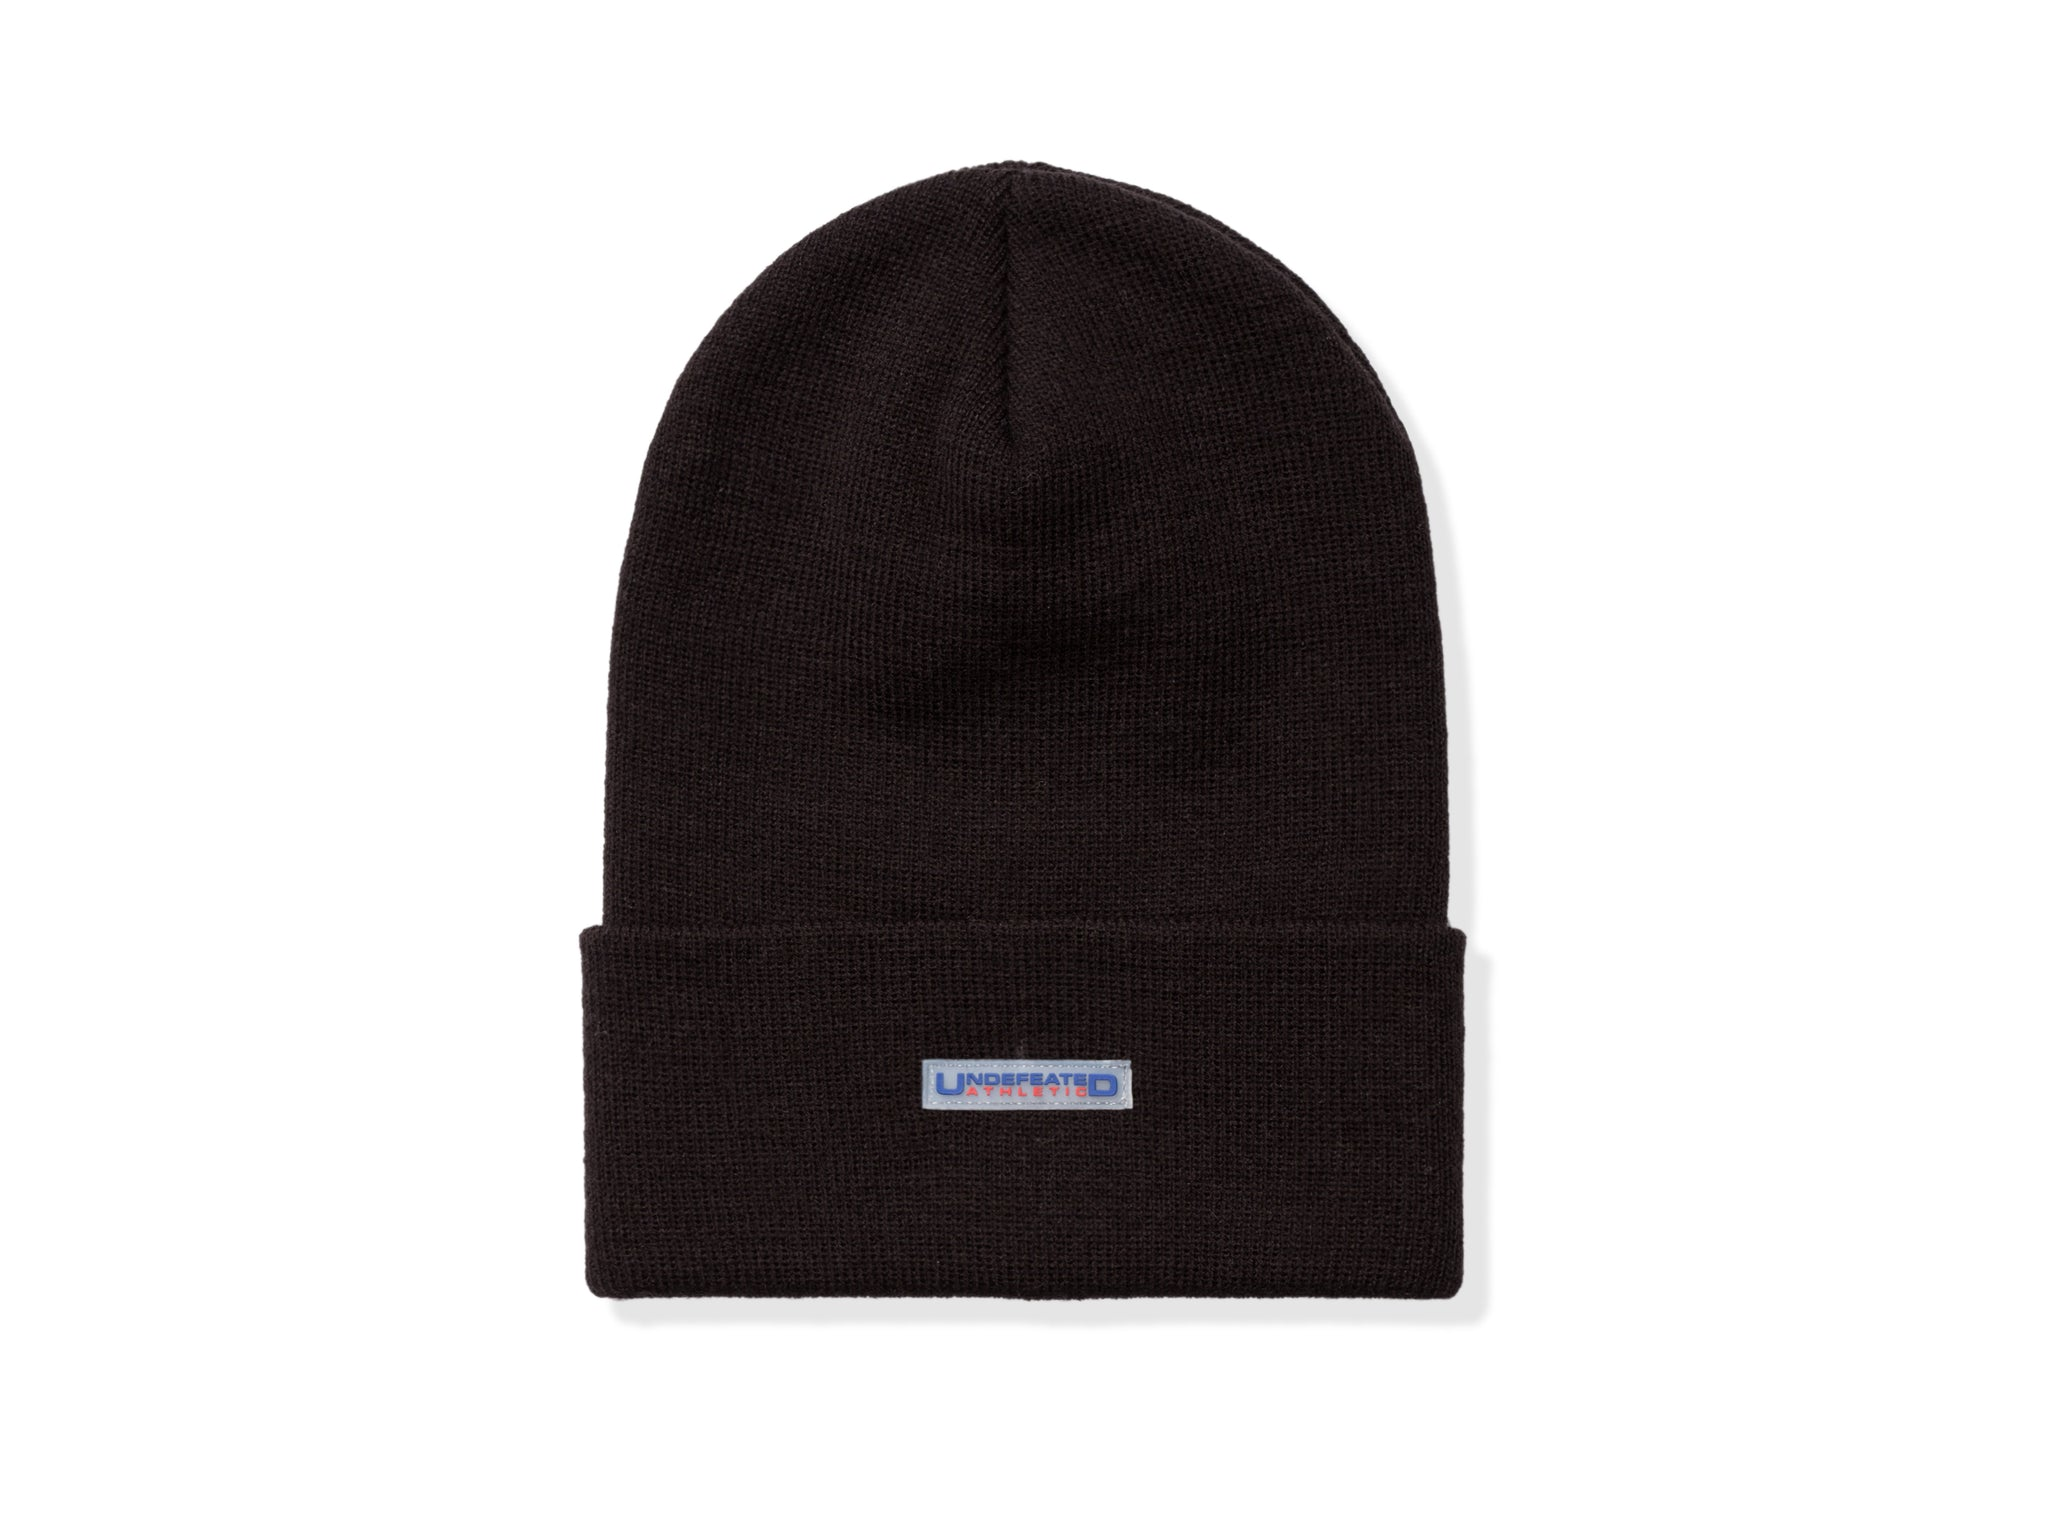 UNDEFEATED ATHLETIC CUFFED BEANIE